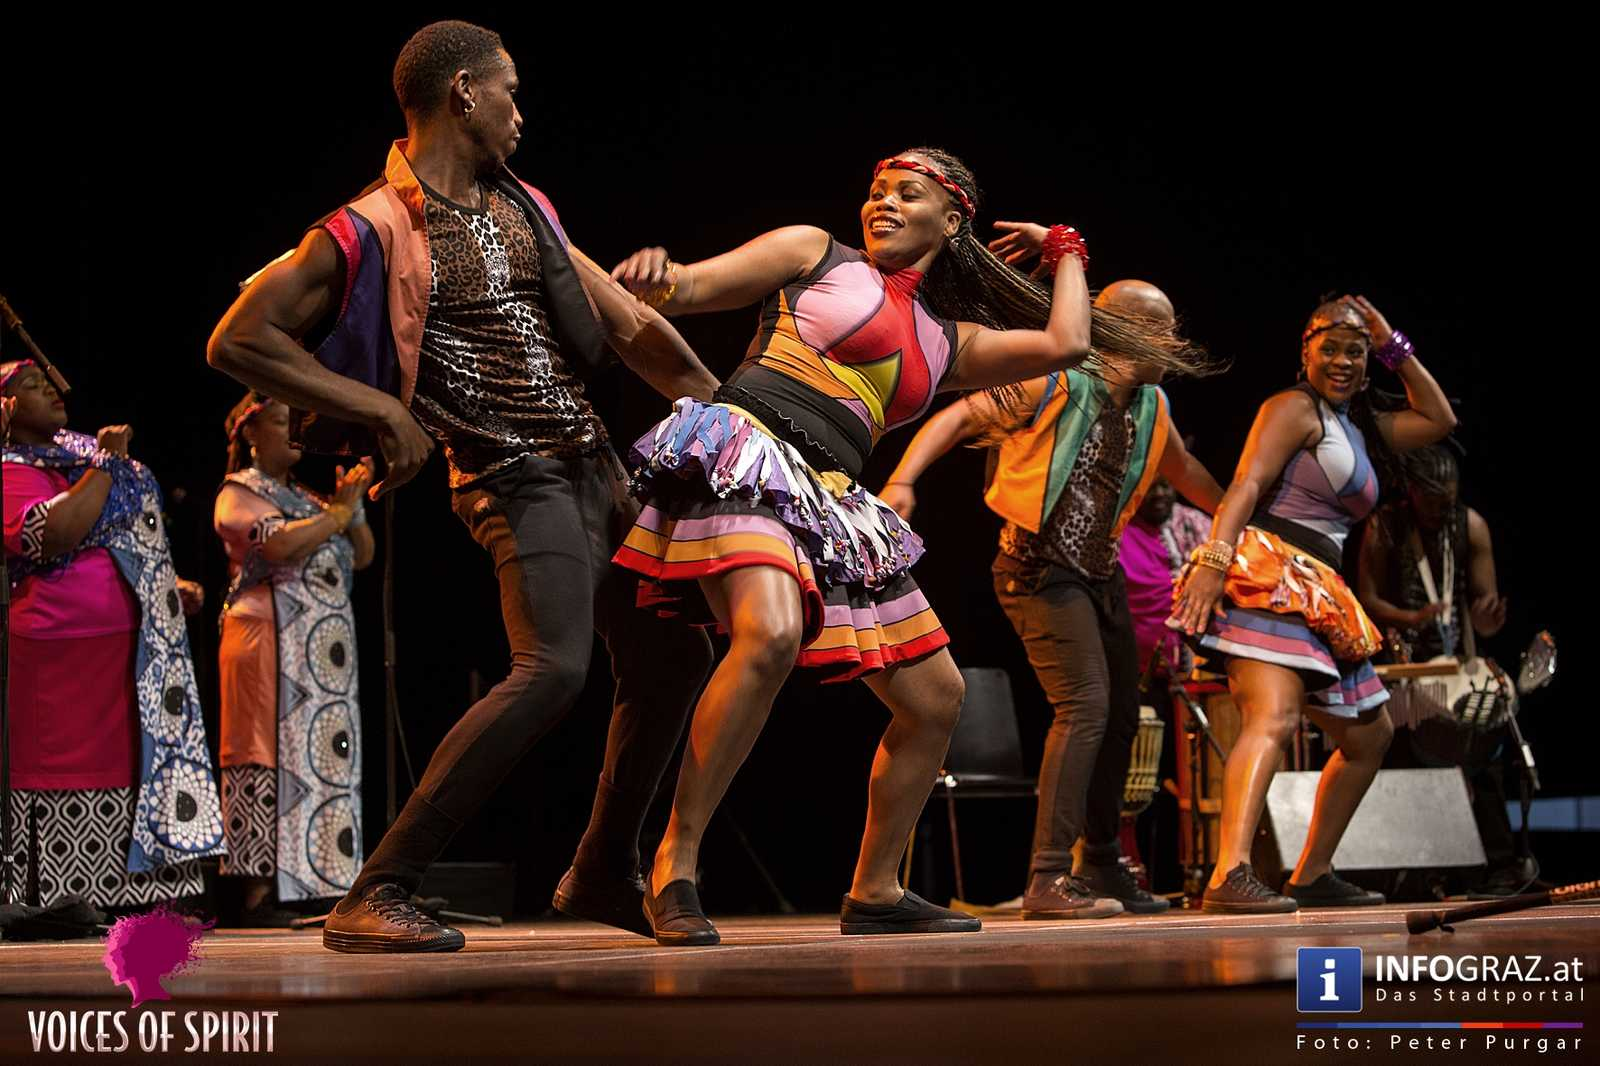 soweto gospel choir internationales chorfestival statdthalle graz voices of spirit eroeffnung festivals 2016 088